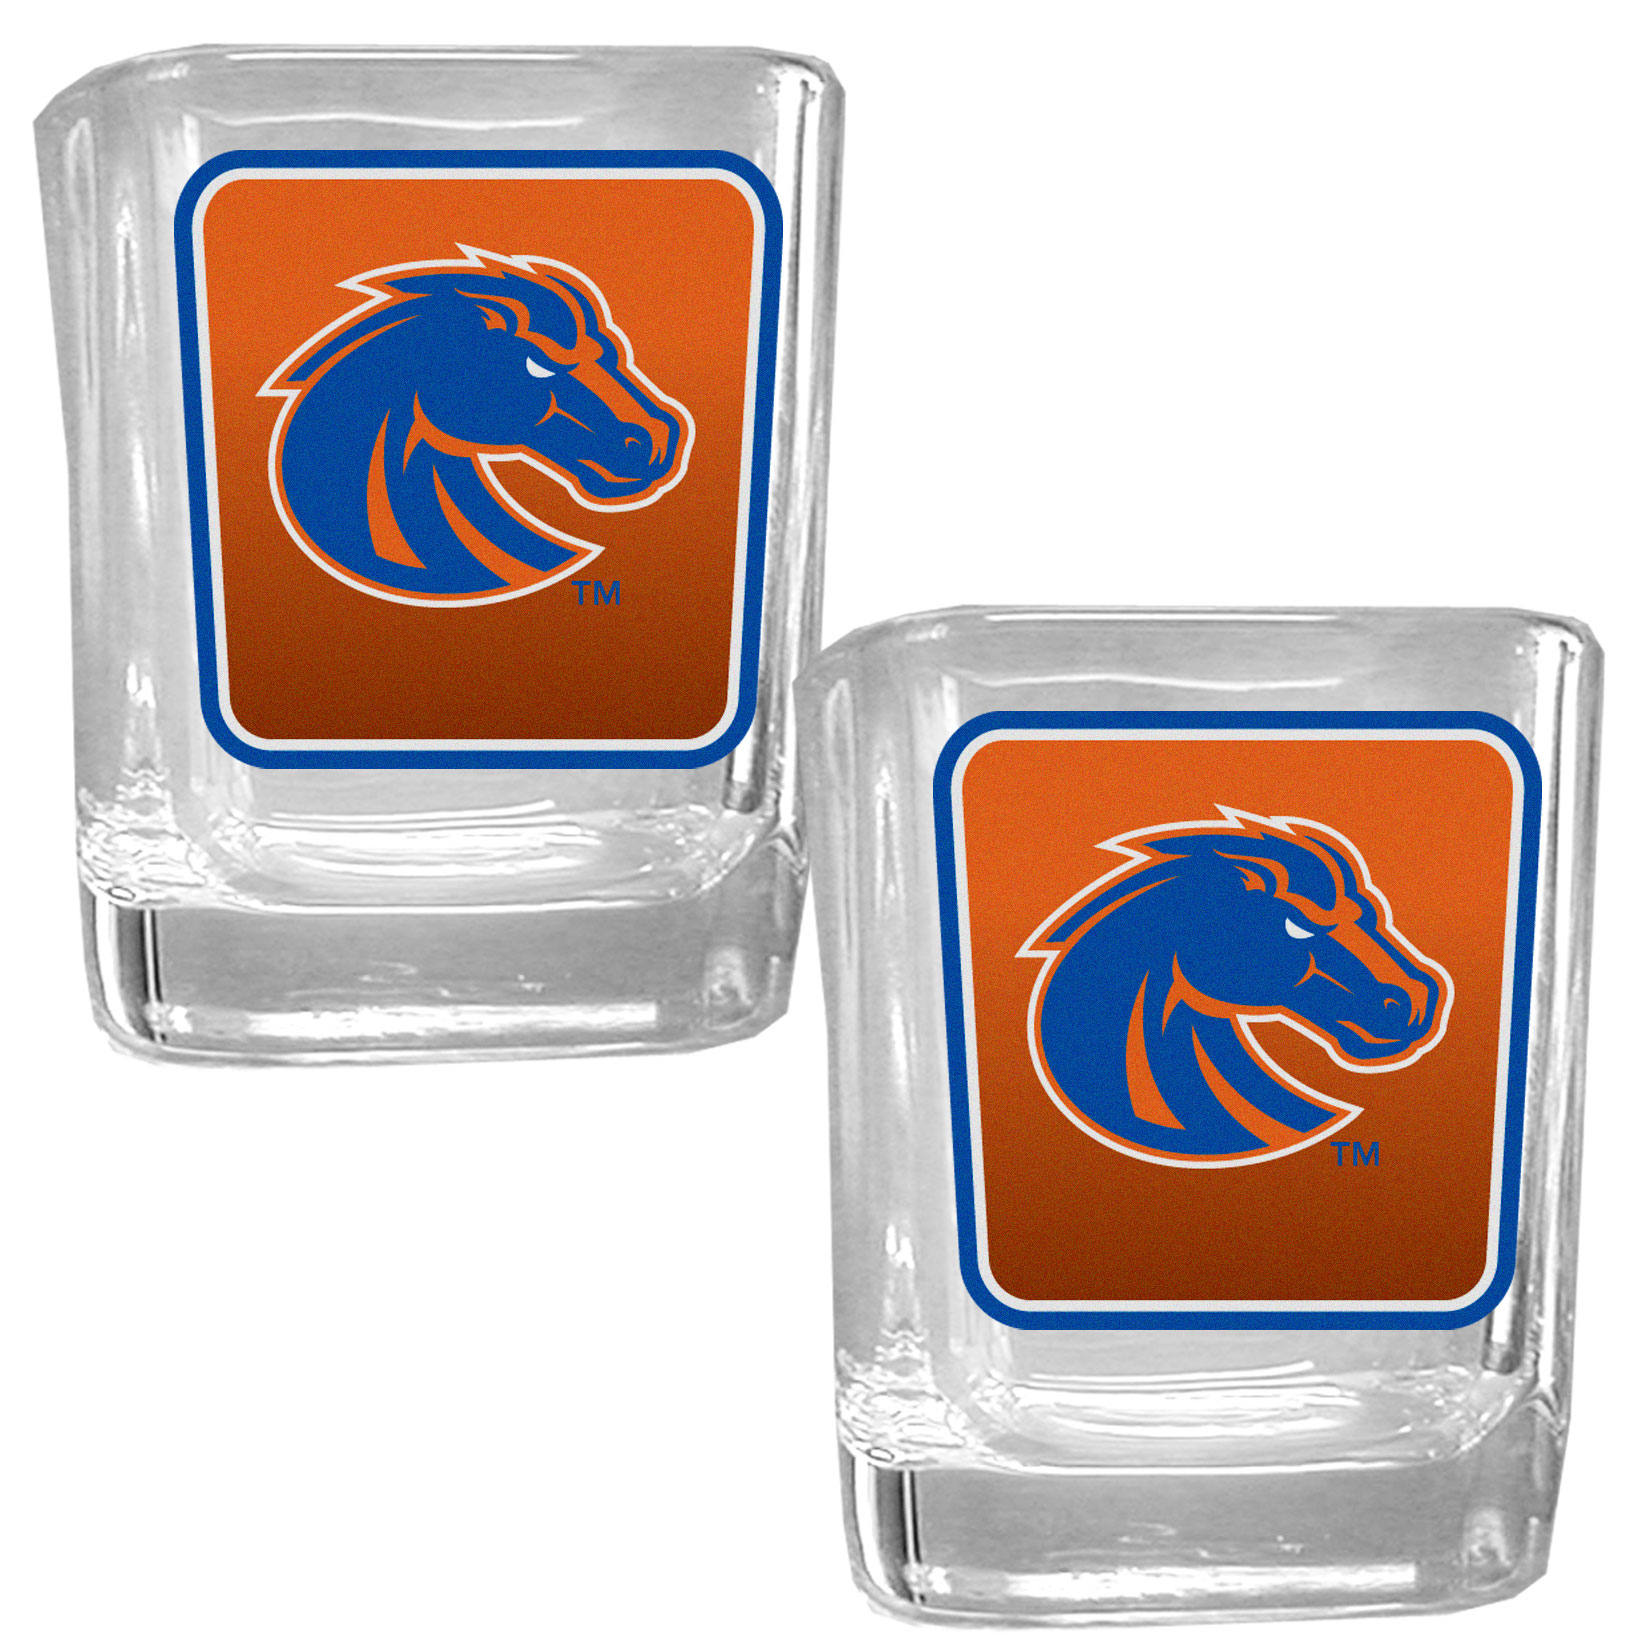 Boise St. Broncos Square Glass Shot Glass Set - Our glass shot glasses are perfect for collectors or any game day event. The 2 ounce glasses feature bright, vidid digital Boise St. Broncos graphics. Comes in a set of 2.